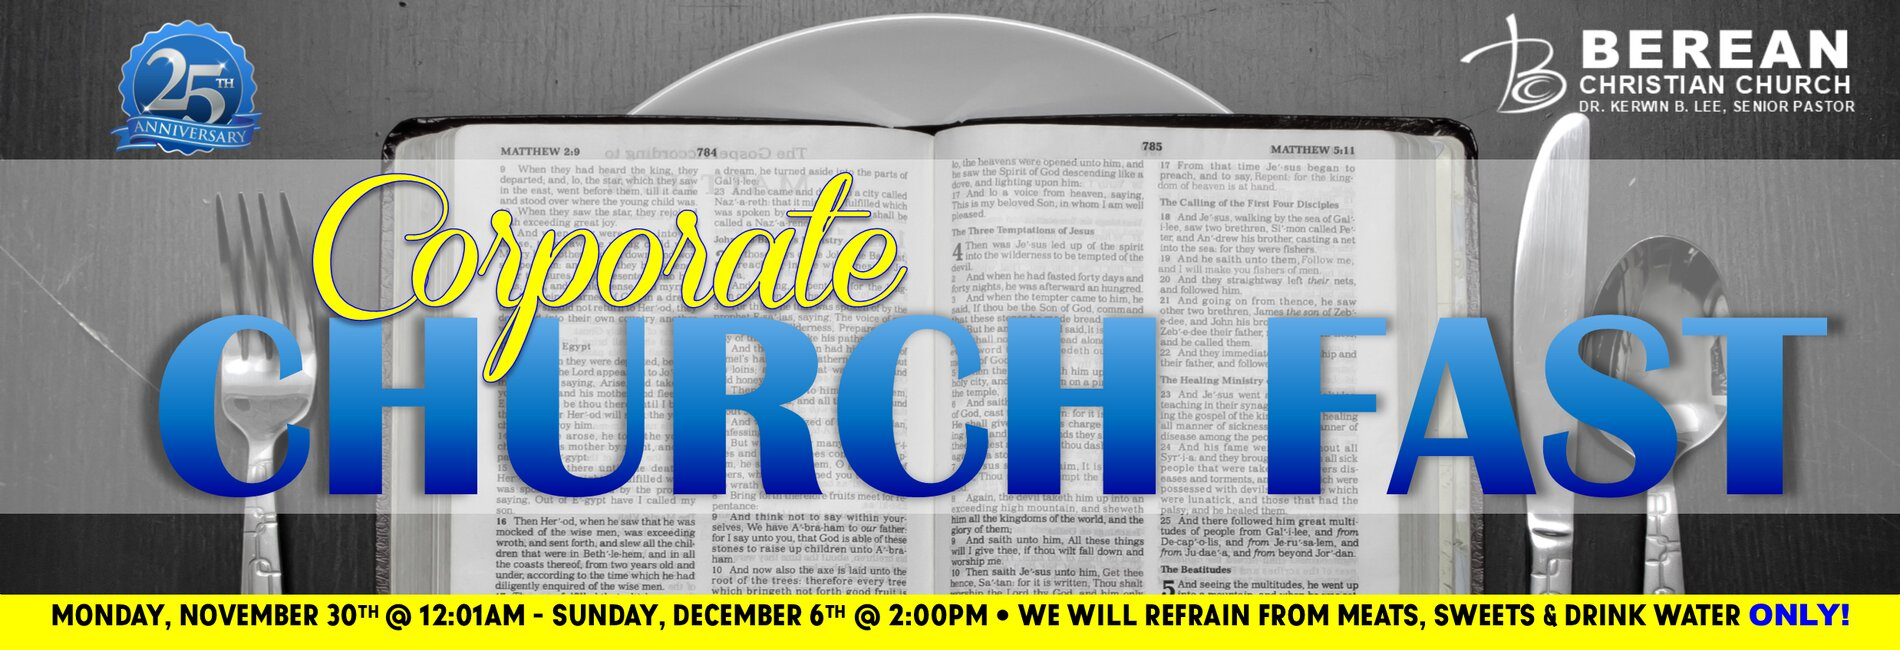 rsz_corporate_church_fast_banner